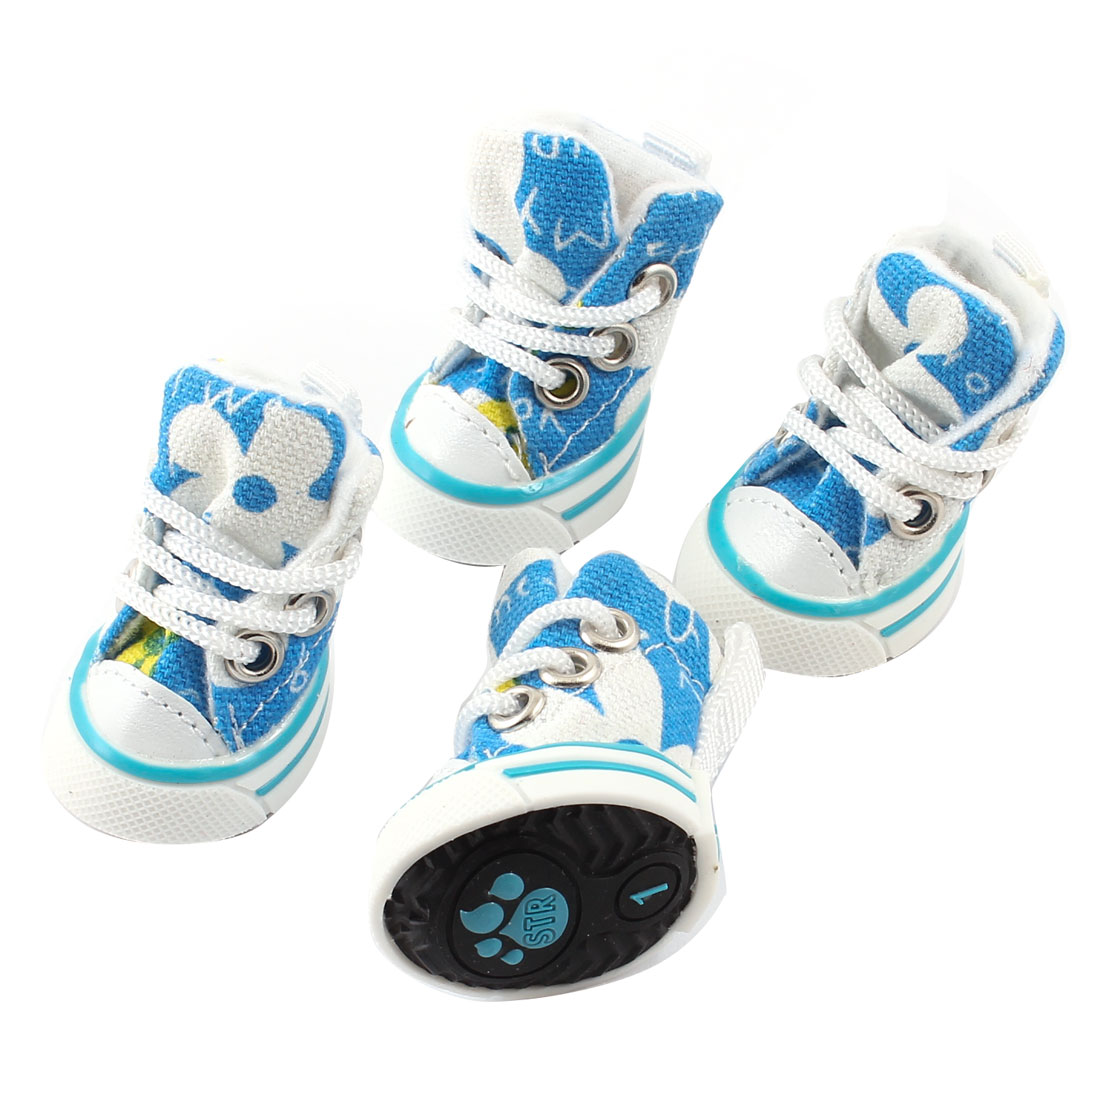 2 Pairs Floral Print Nonslip Sole Canvas White Blue Pet Sneakers Shoes Size XXS